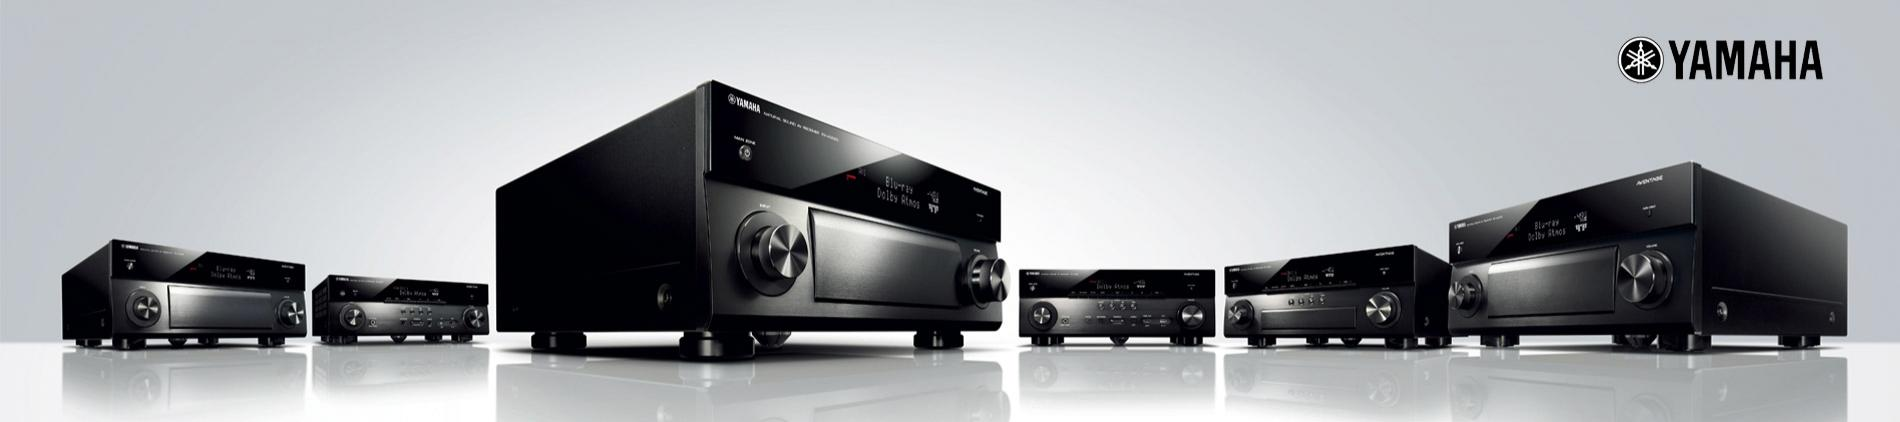 Yamaha Receiver Family